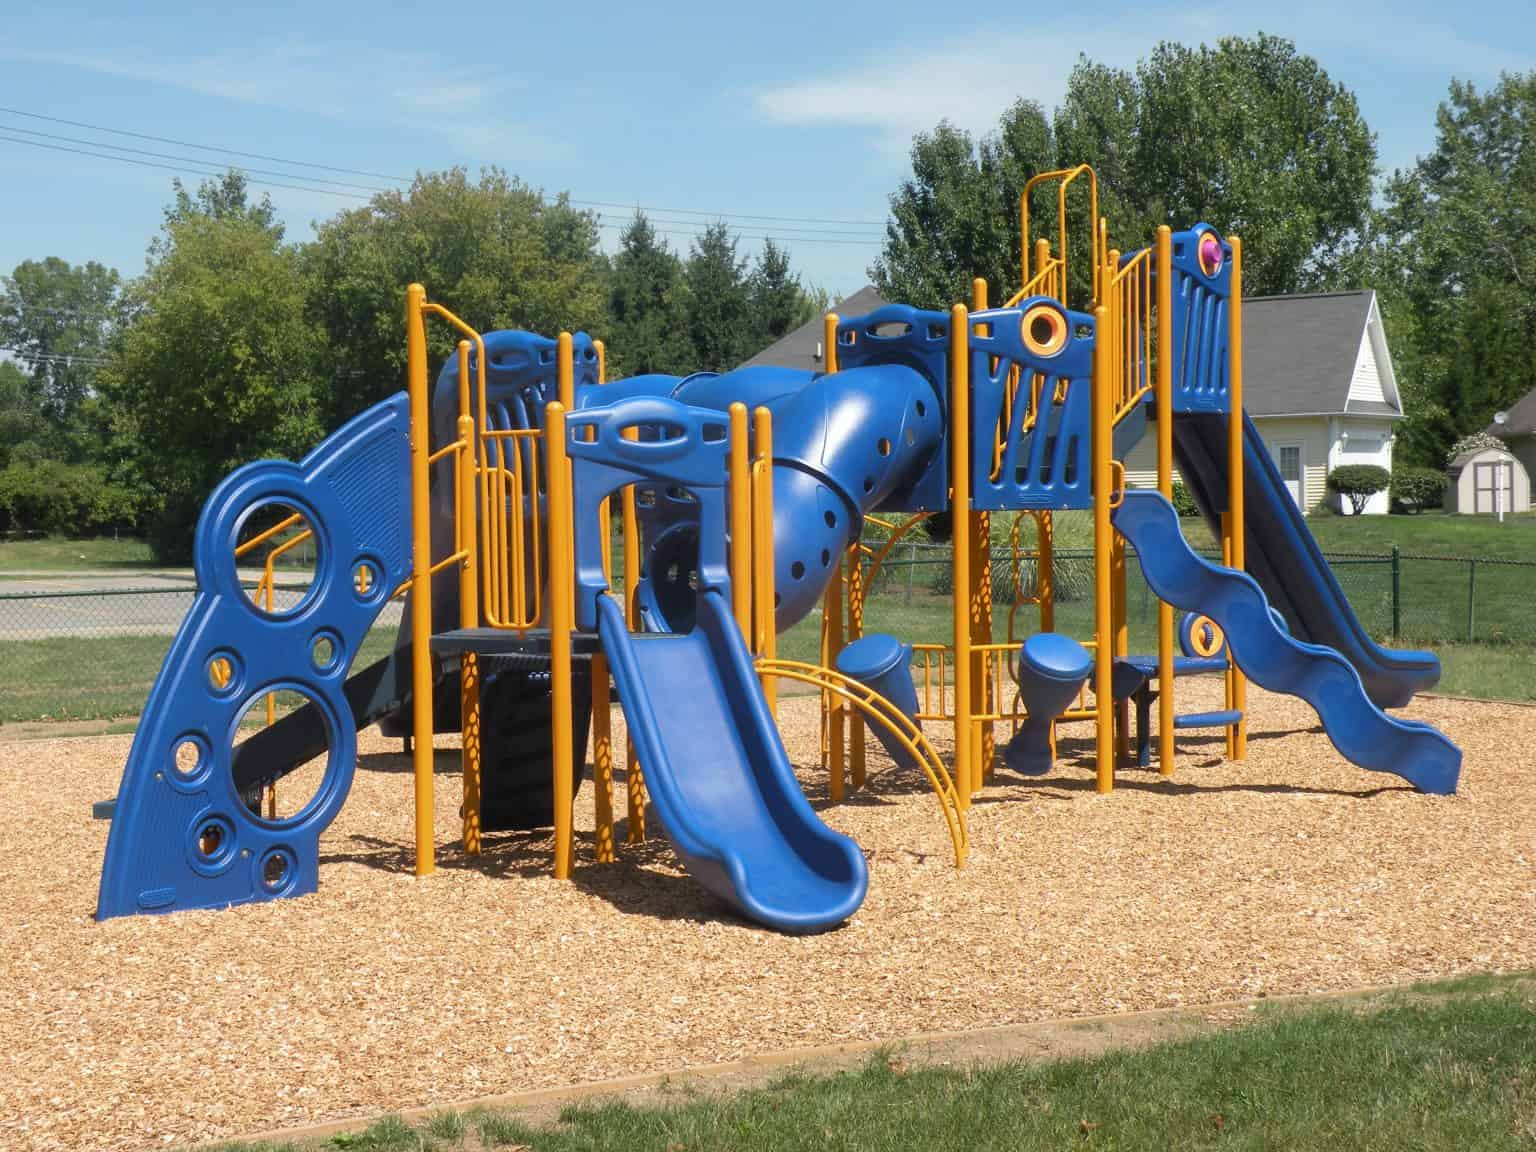 State-Road-Elementary-School-Playground-Webster-NY-1536x1152